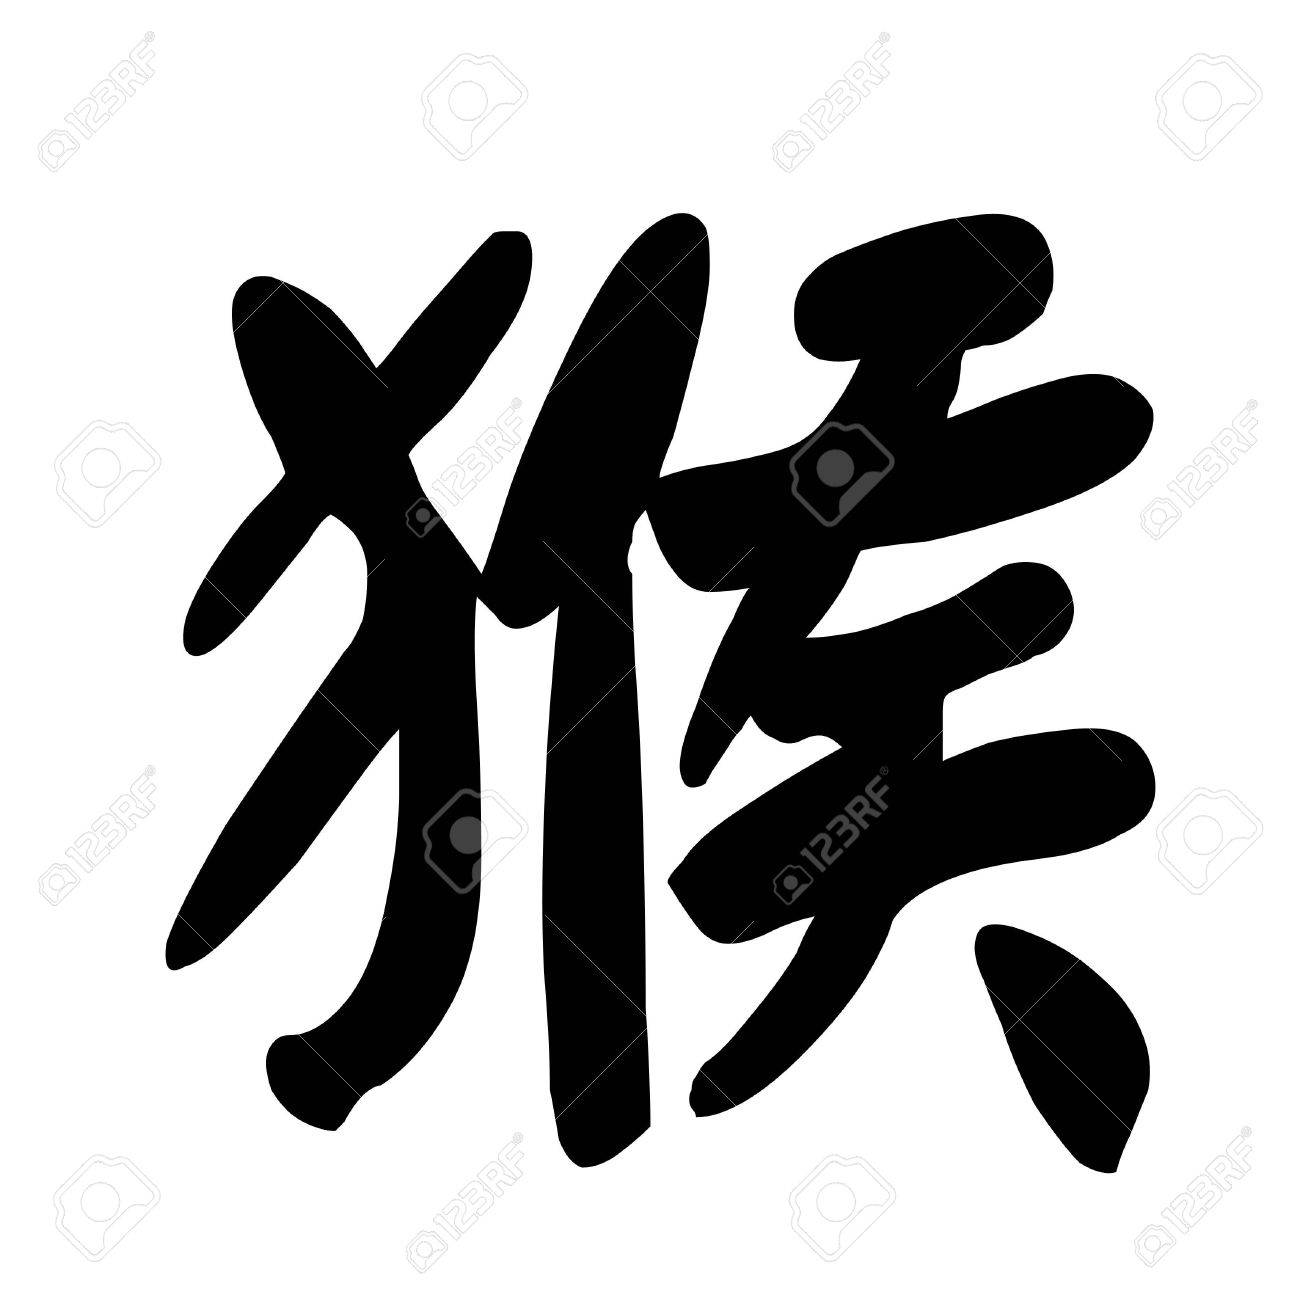 Chinese Calligraphy Character monkey Stock Photo - 7678494